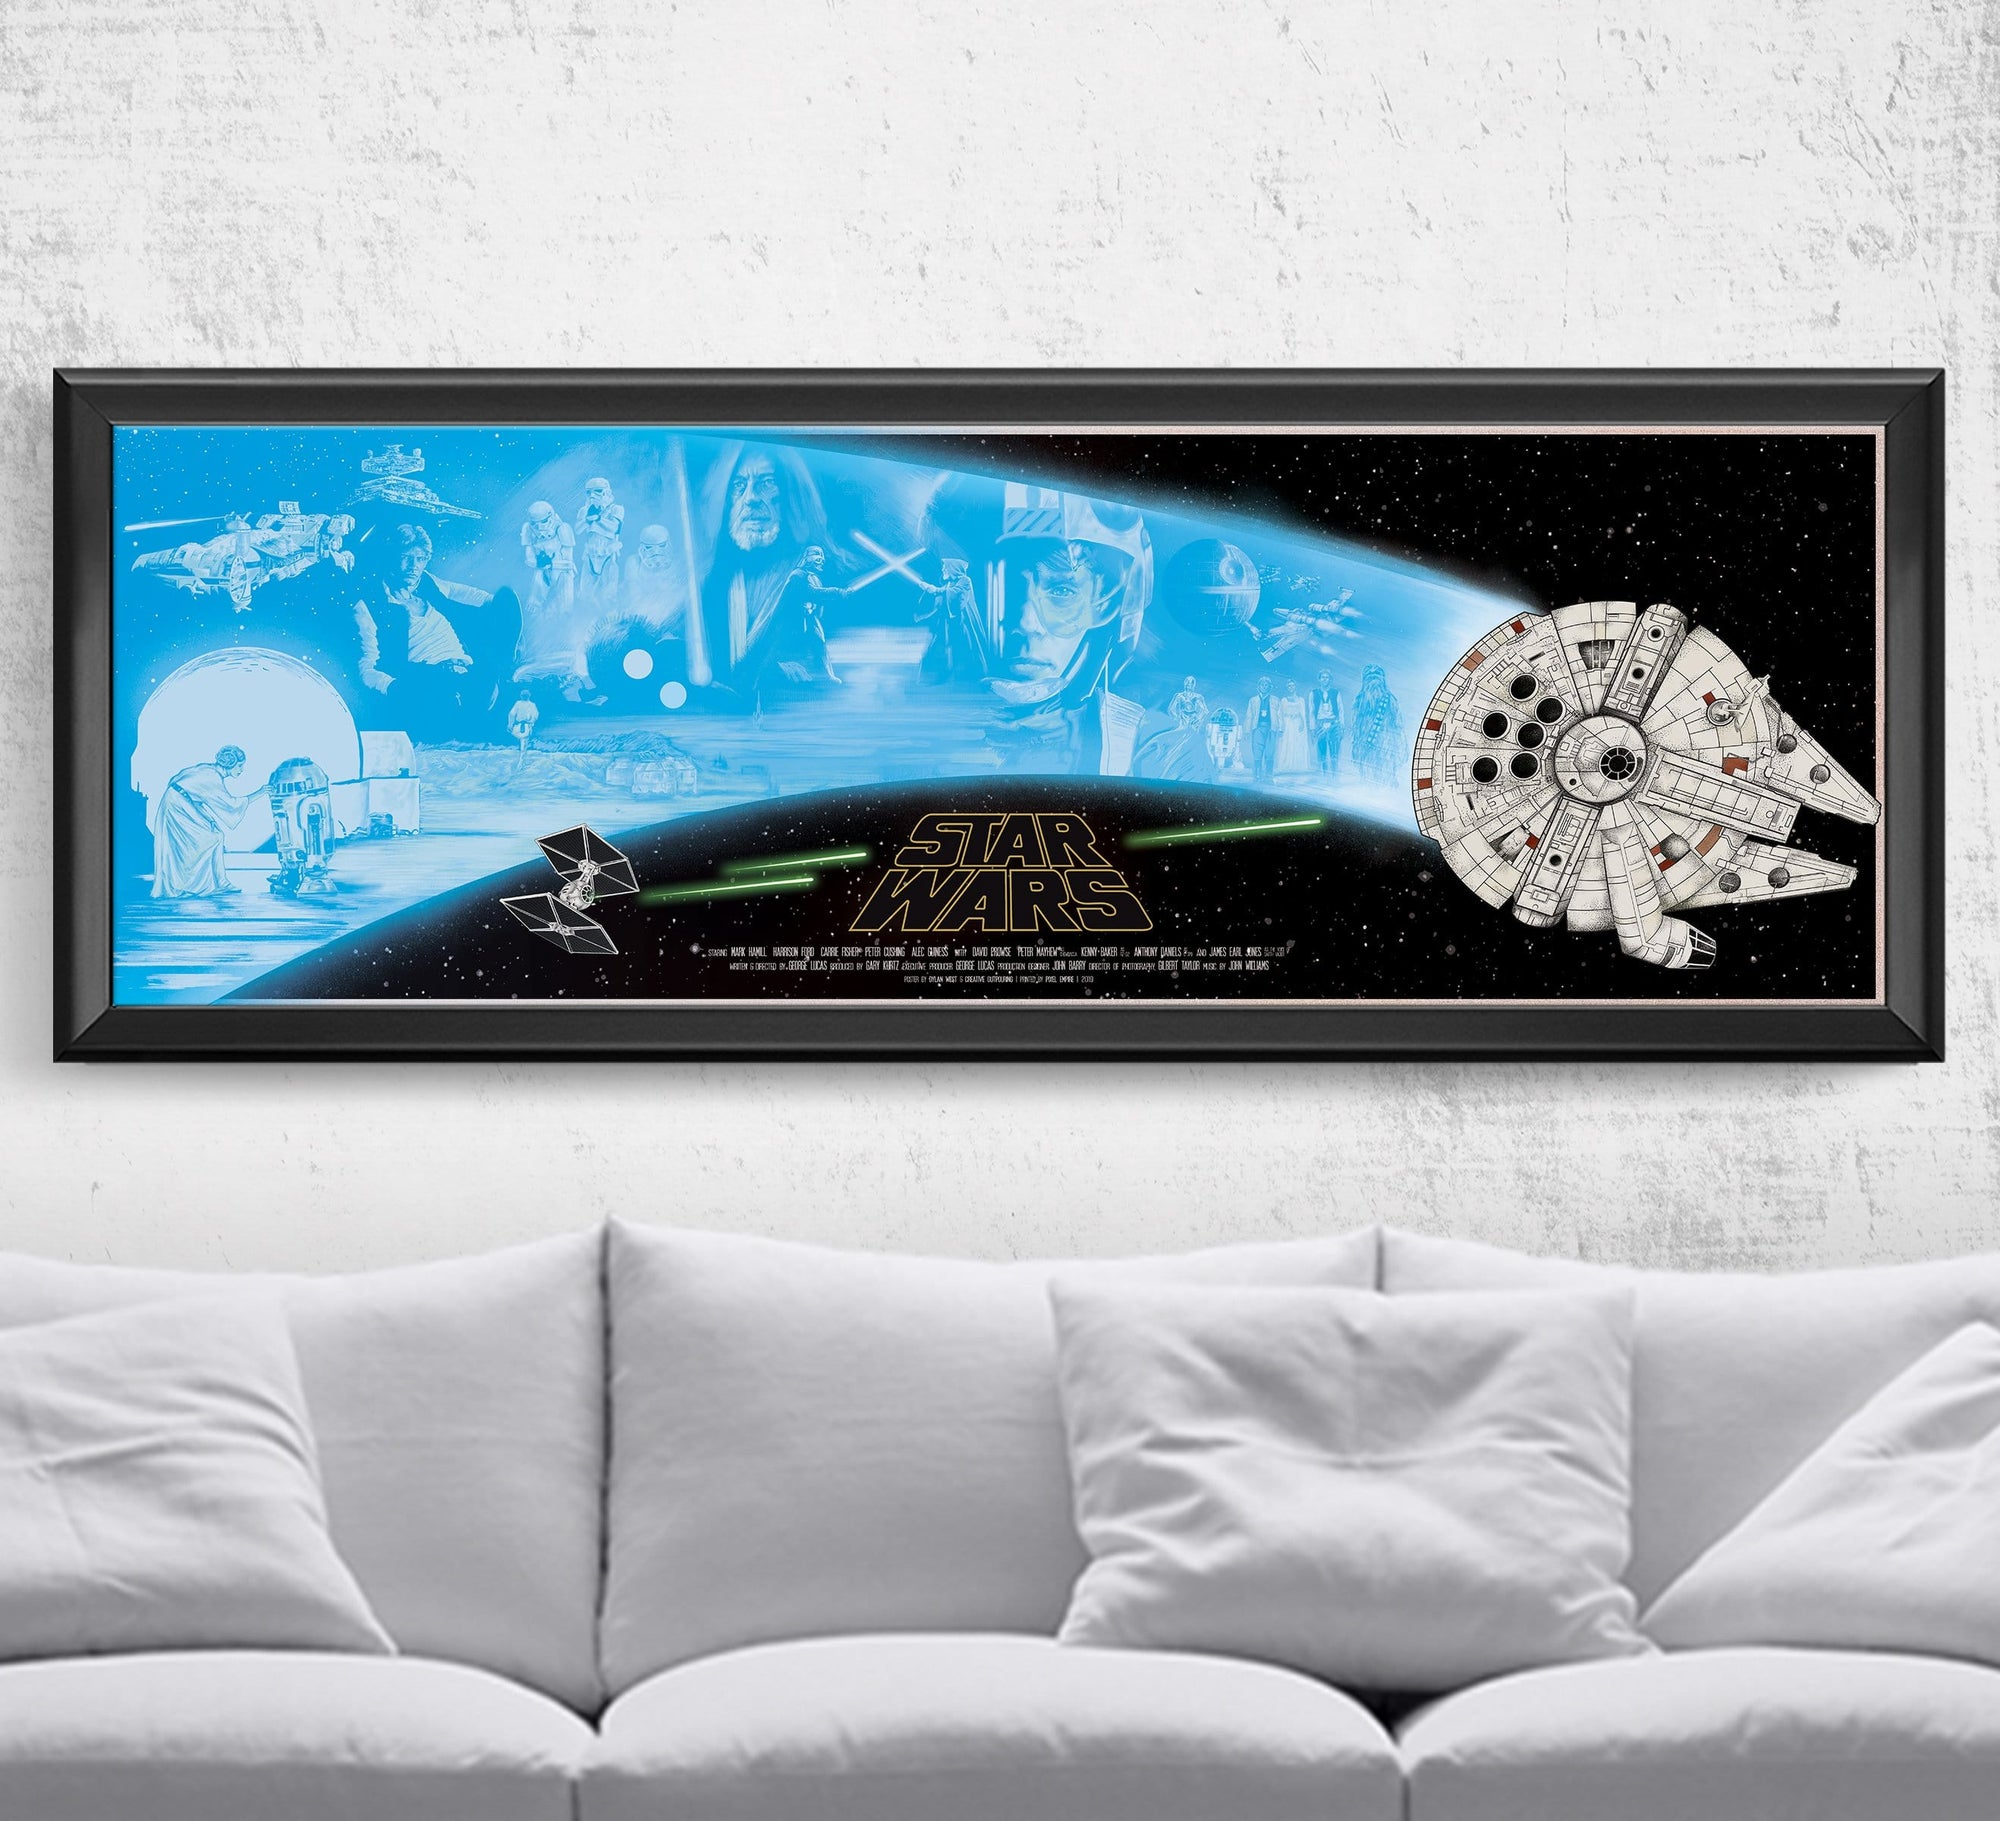 Star Wars - A New Hope - Limited Edition Print Posters by Dylan West - Pixel Empire